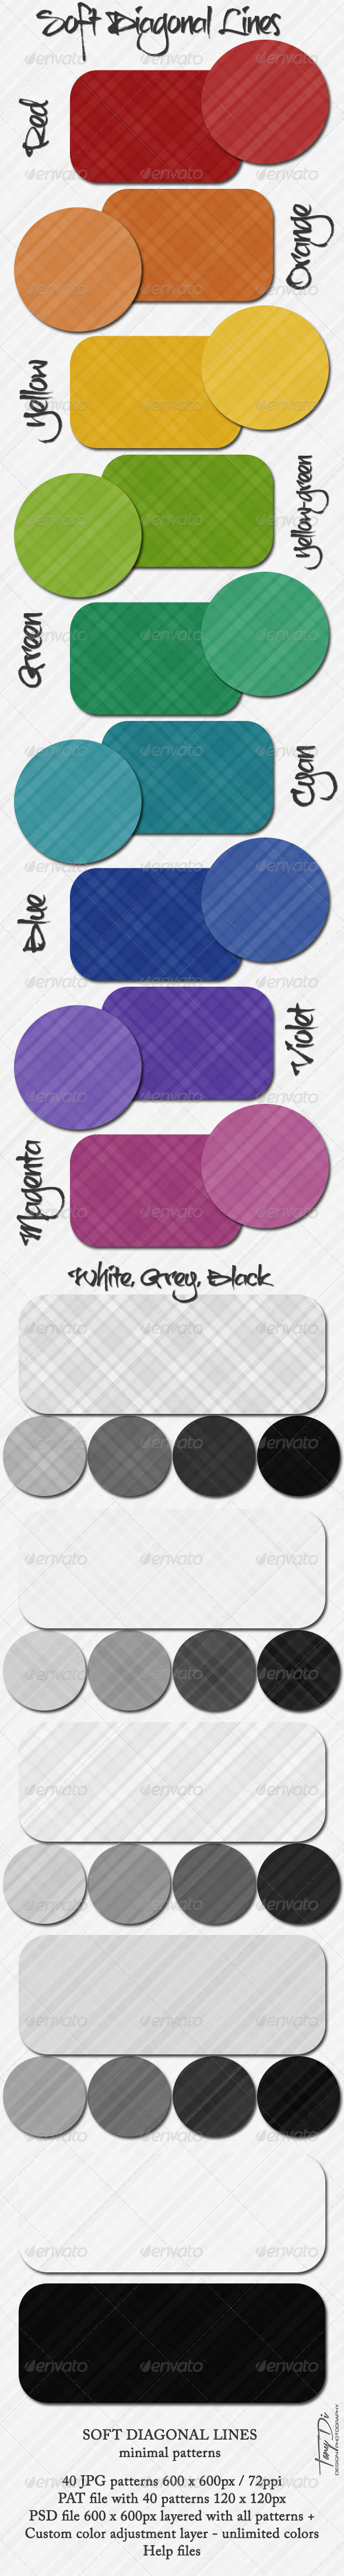 GraphicRiver Soft Diagonal Lines Patterns 4568326